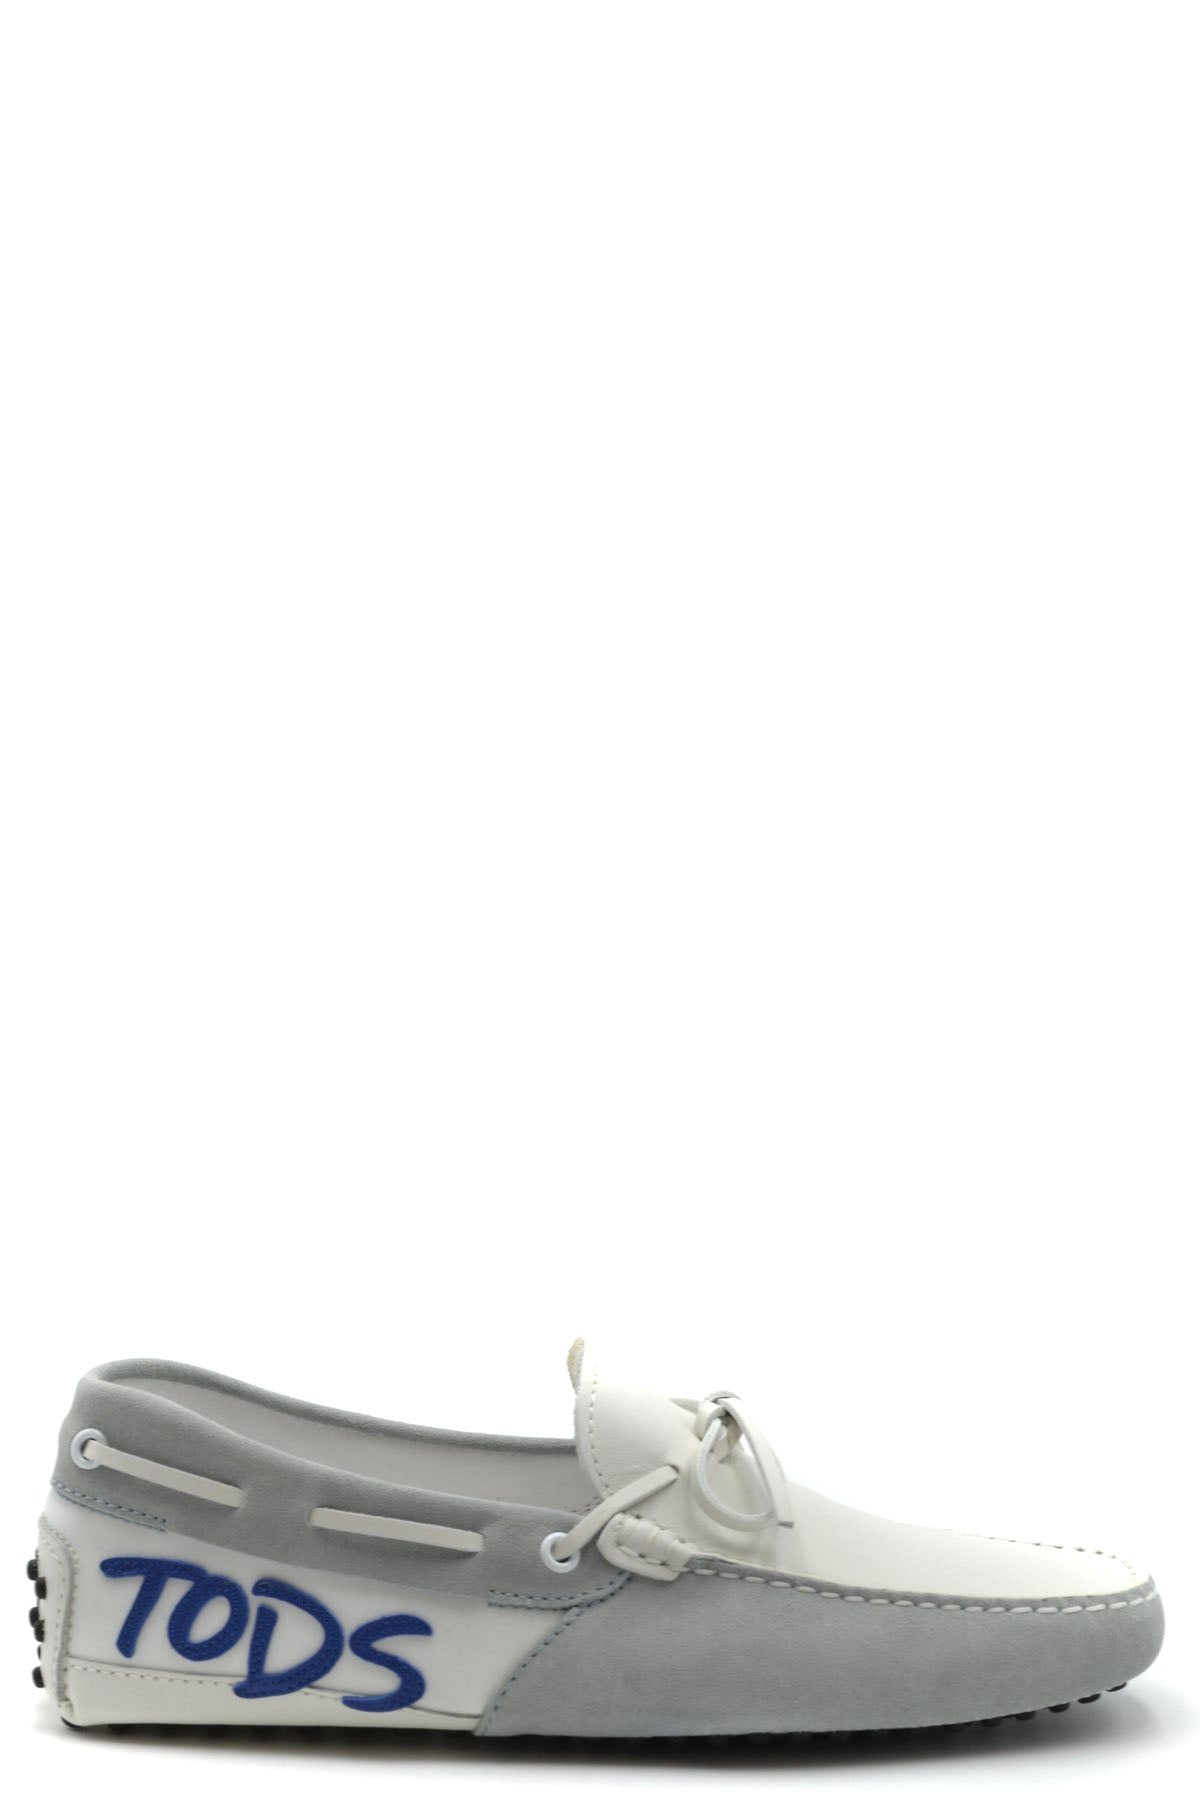 Shoes Tod'S-6-Product Details Type Of Accessory: ShoesTerms: New With LabelYear: 2019Main Color: GrayGender: ManMade In: ItalyManufacturer Part Number: Xxm0Gw0X900Iun0ZyvSize: UkSeason: Spring / SummerComposition: Leather 100%-Keyomi-Sook